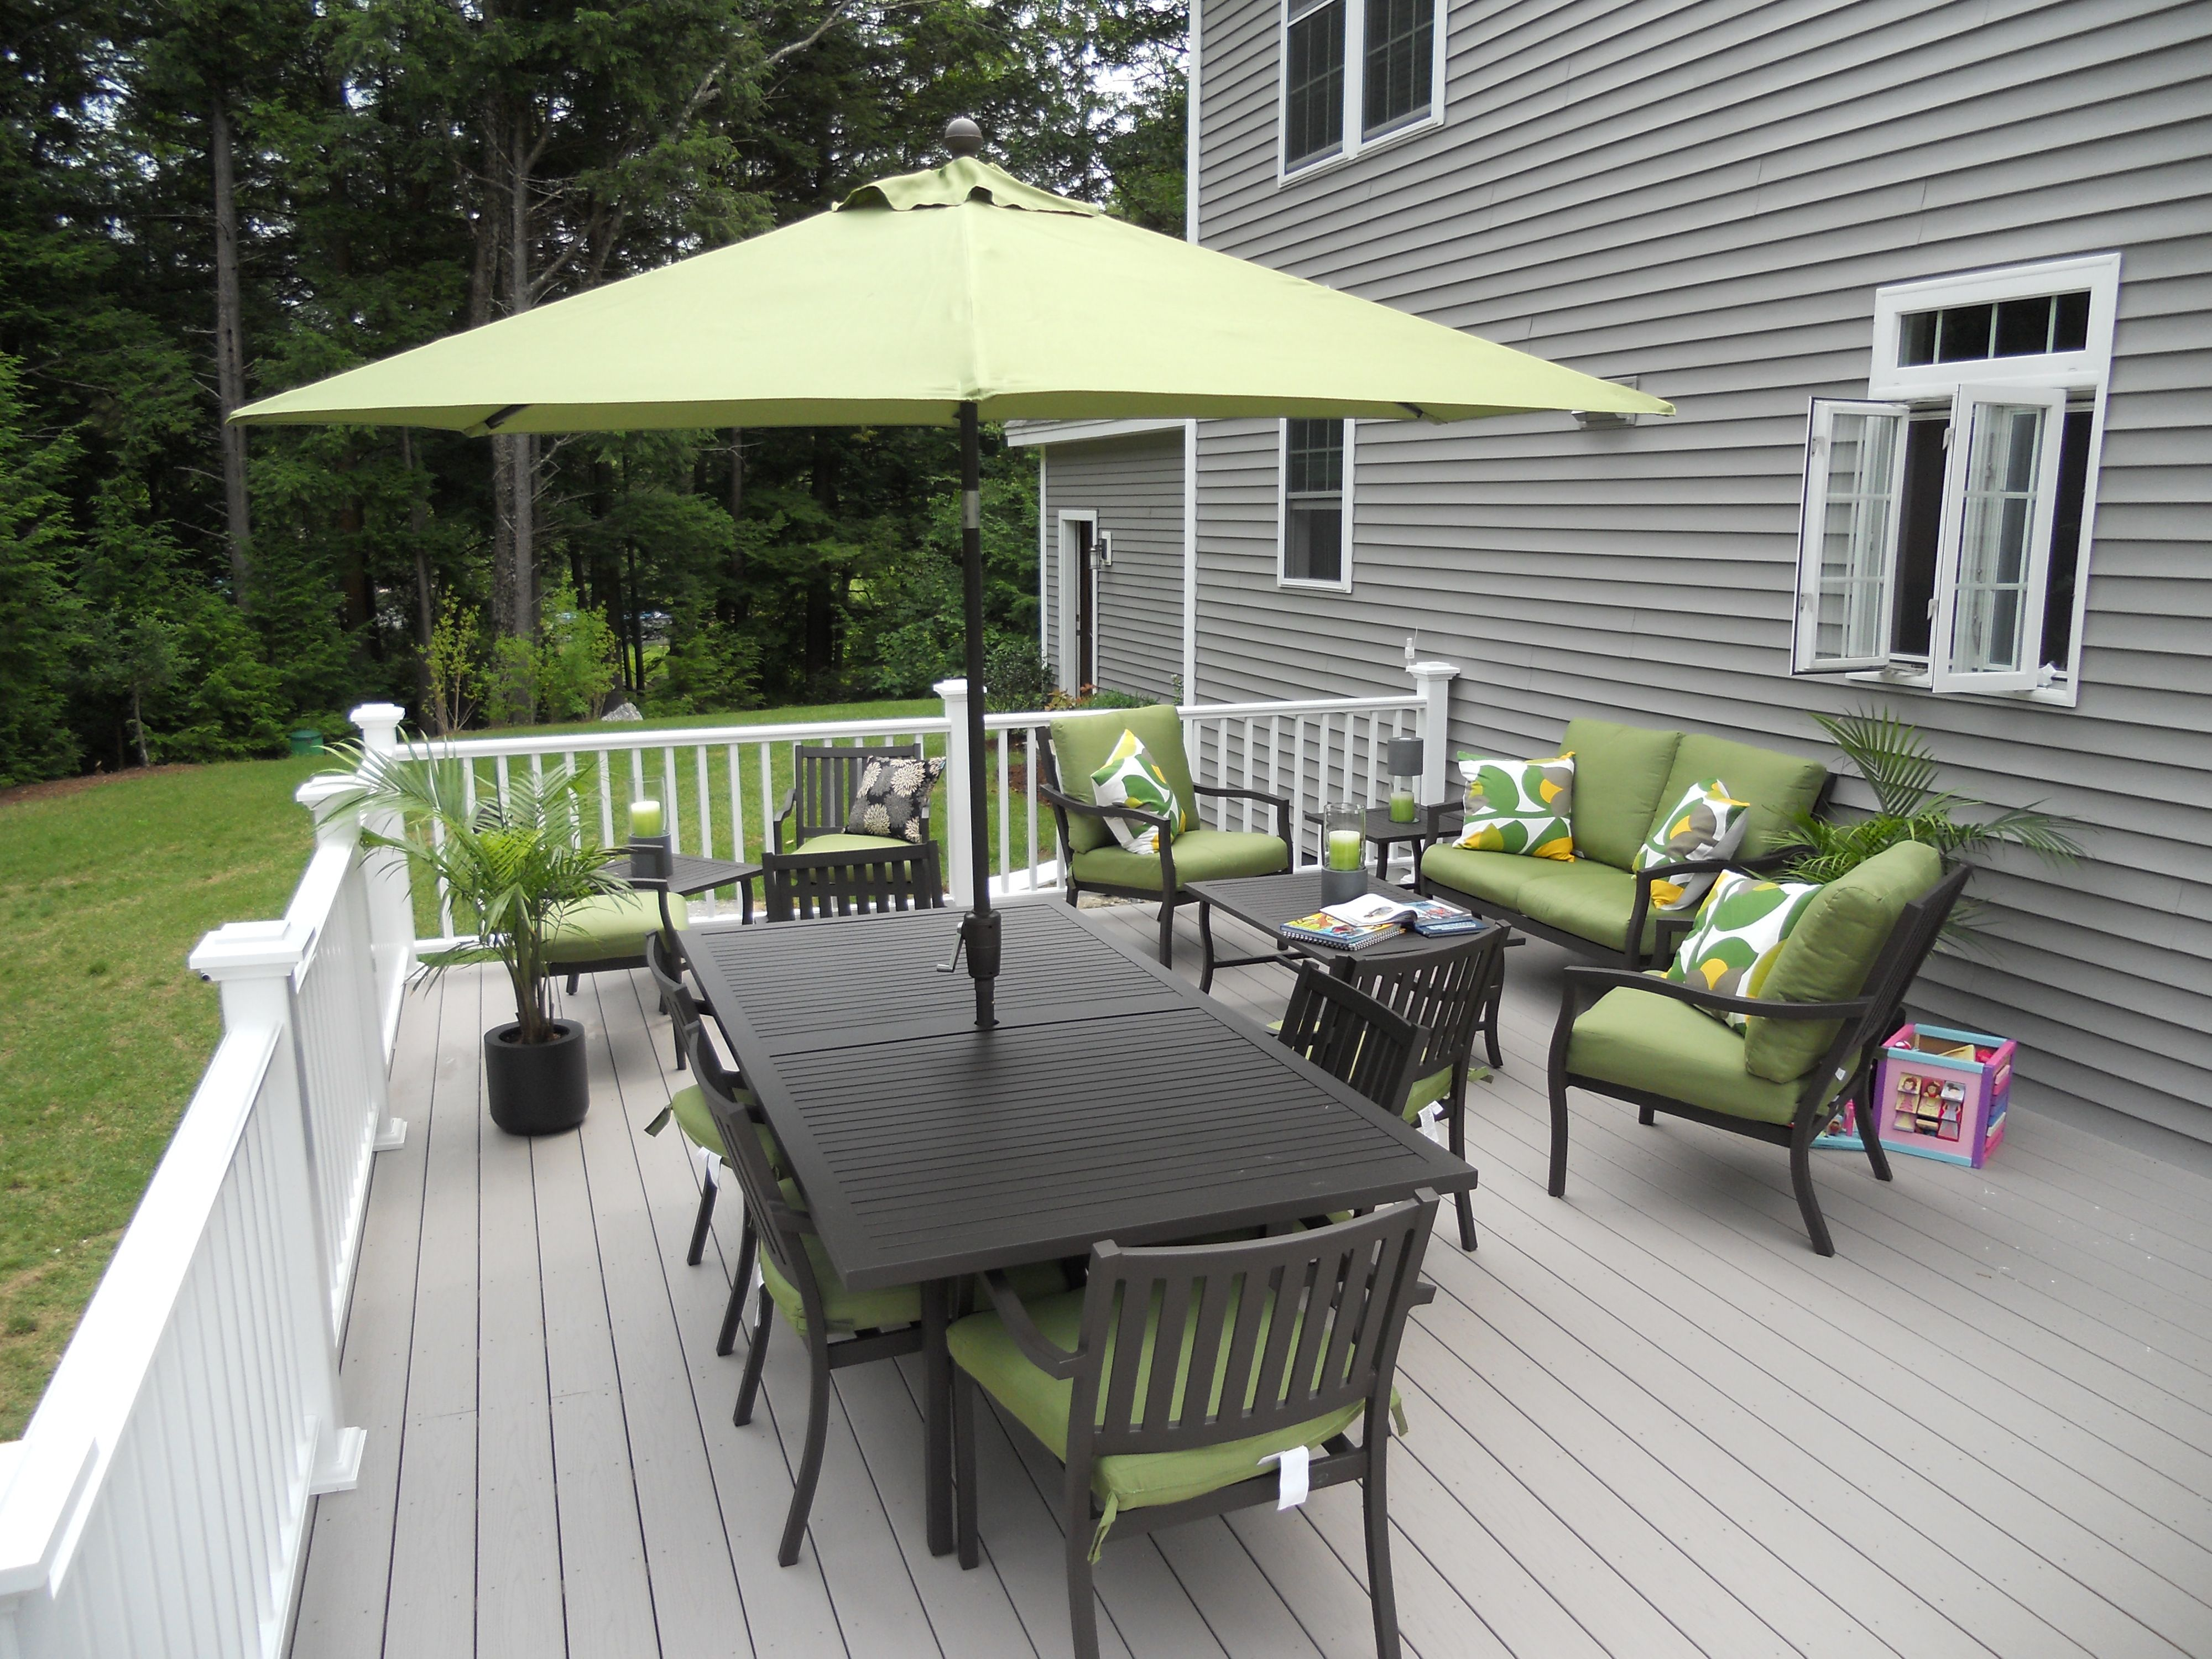 New Composite Decking See All New Capped Composite Decking